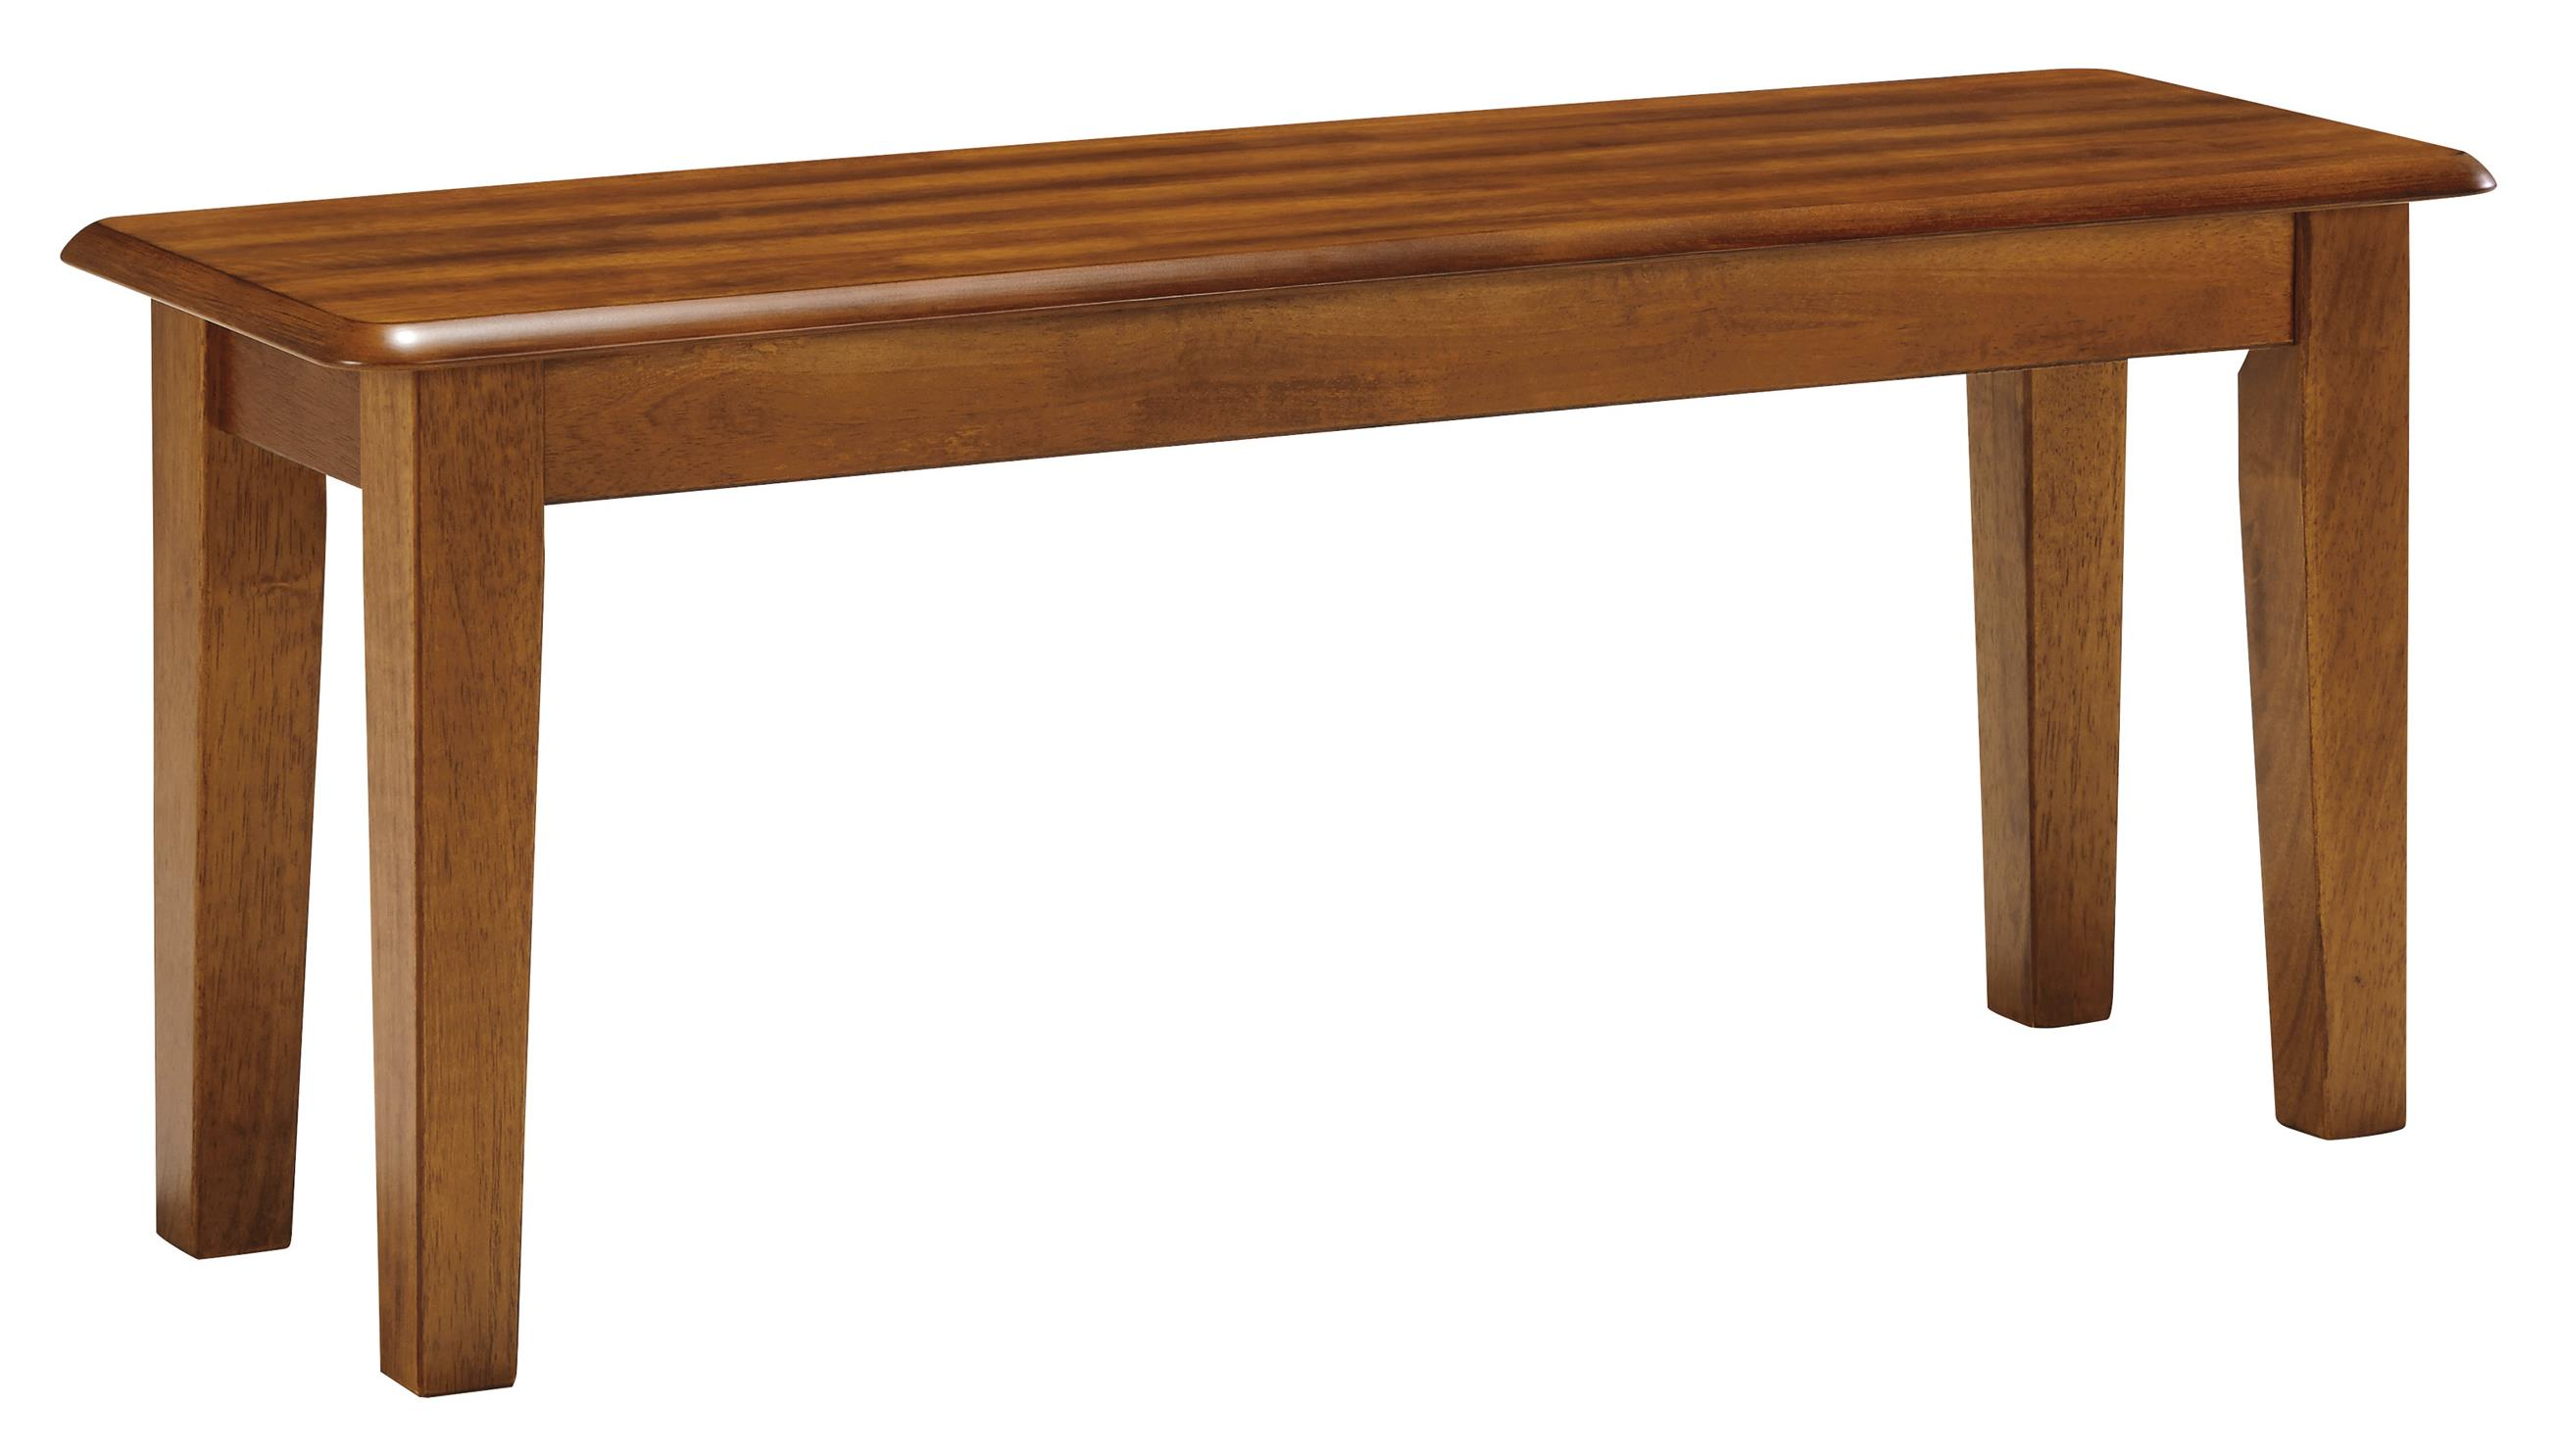 Berringer Bench by Ashley Furniture at Value City Furniture